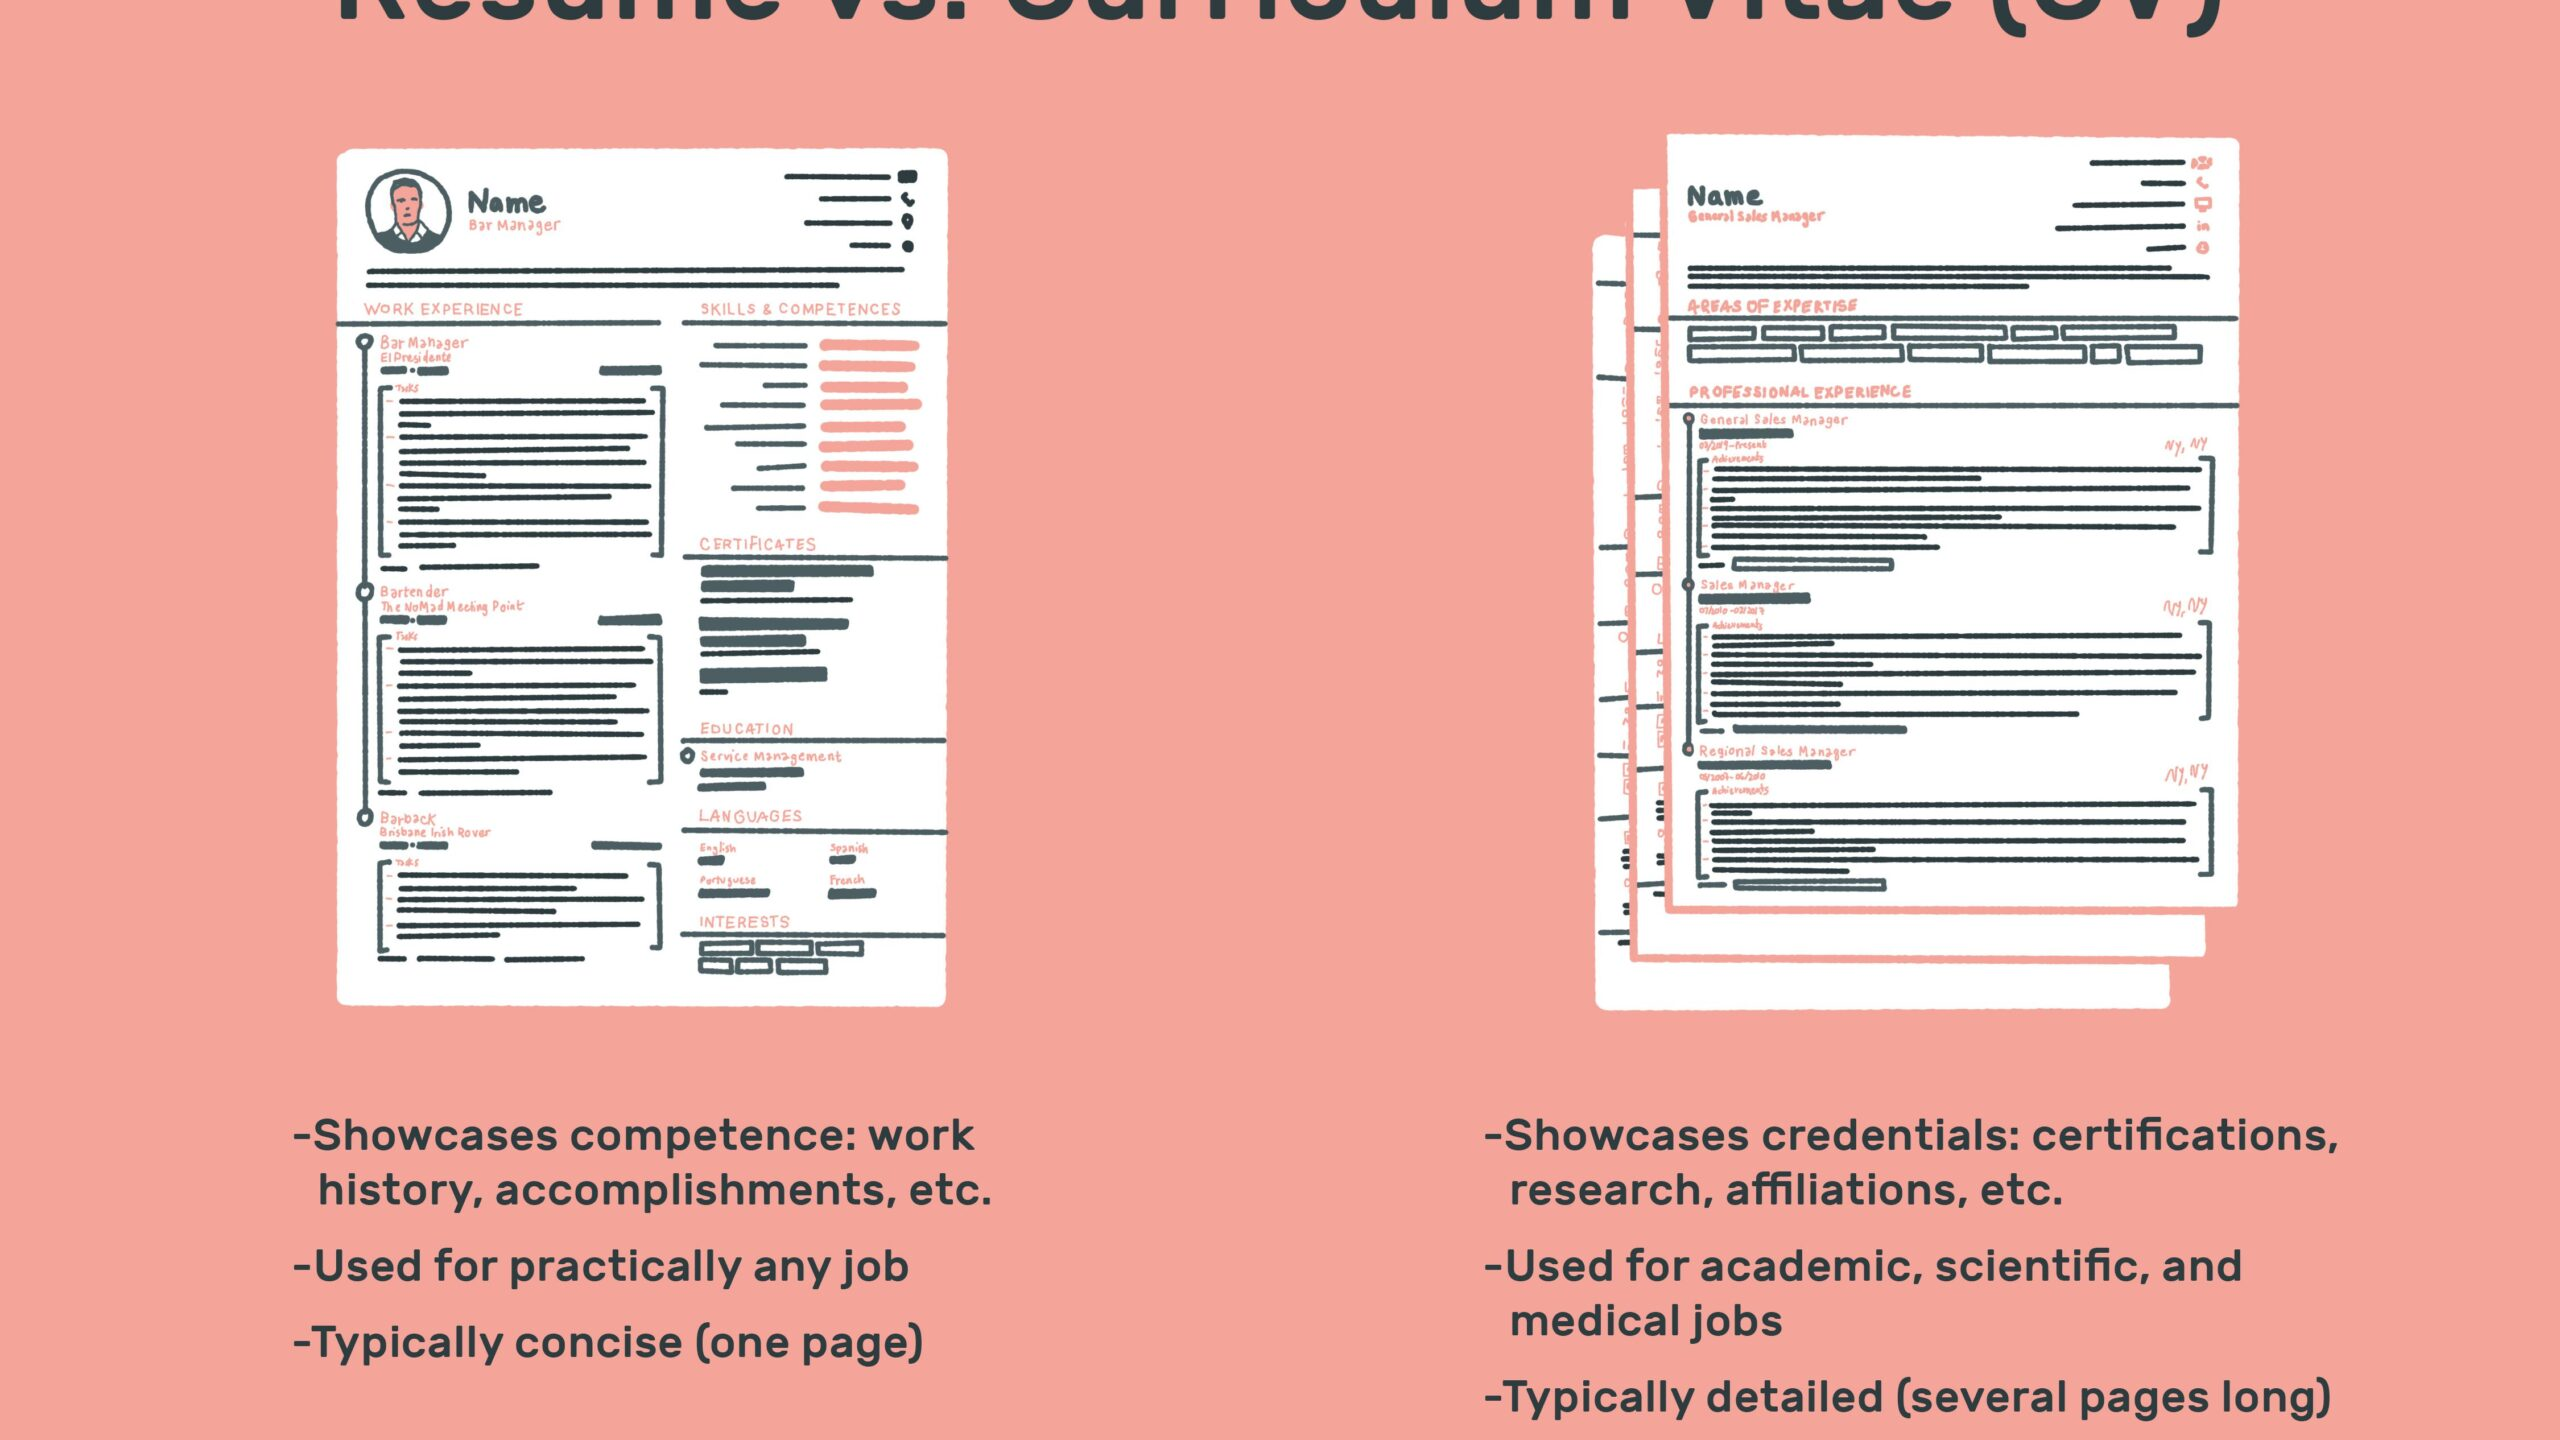 the difference between resume and curriculum vitae another word for cv vs final welder Resume Another Word For Resume